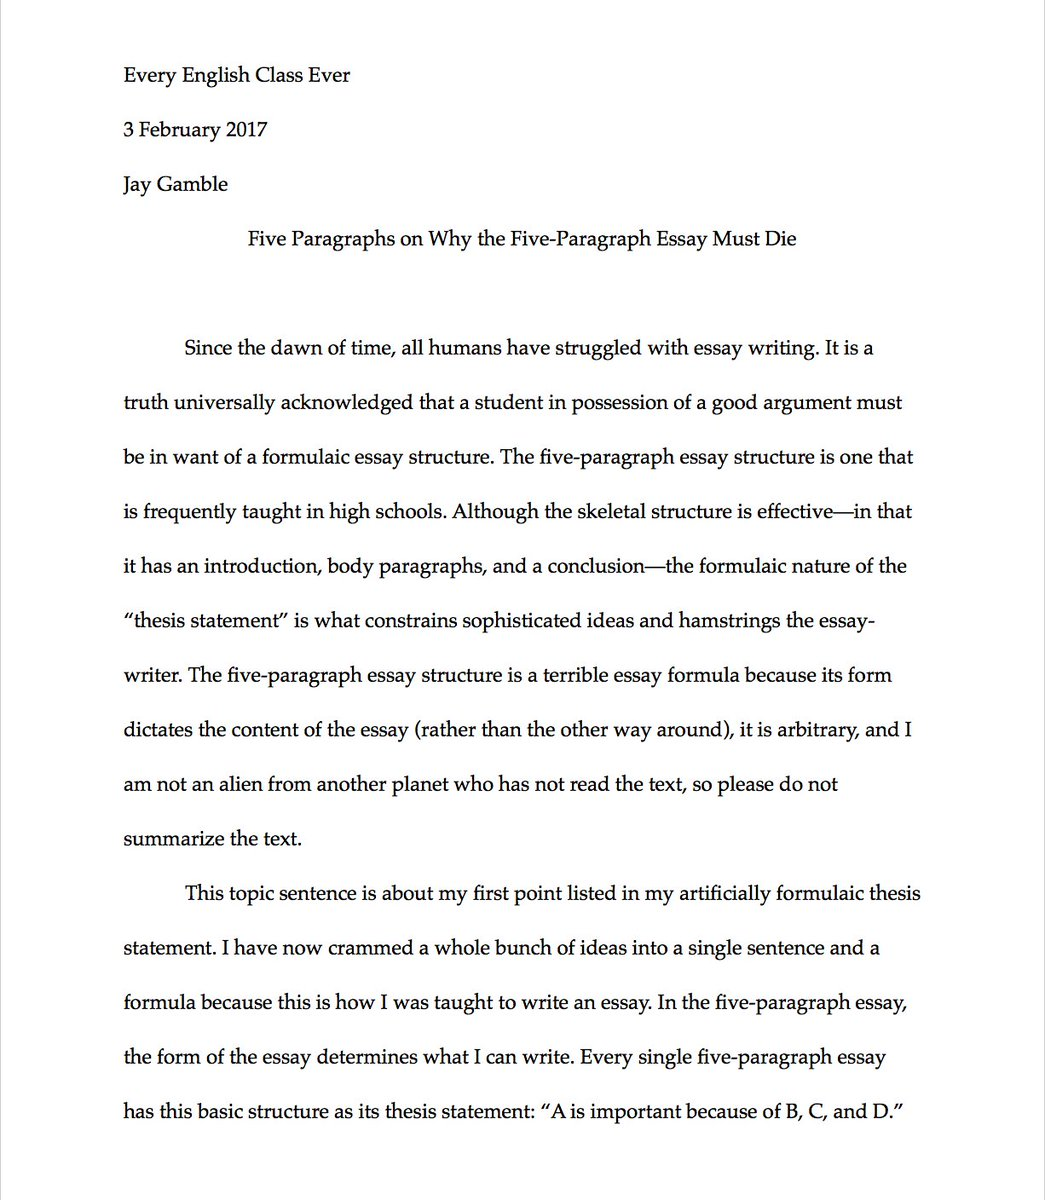 005 Essay Example Paragraph Remarkable 5 Outline Conclusion Spacing Full